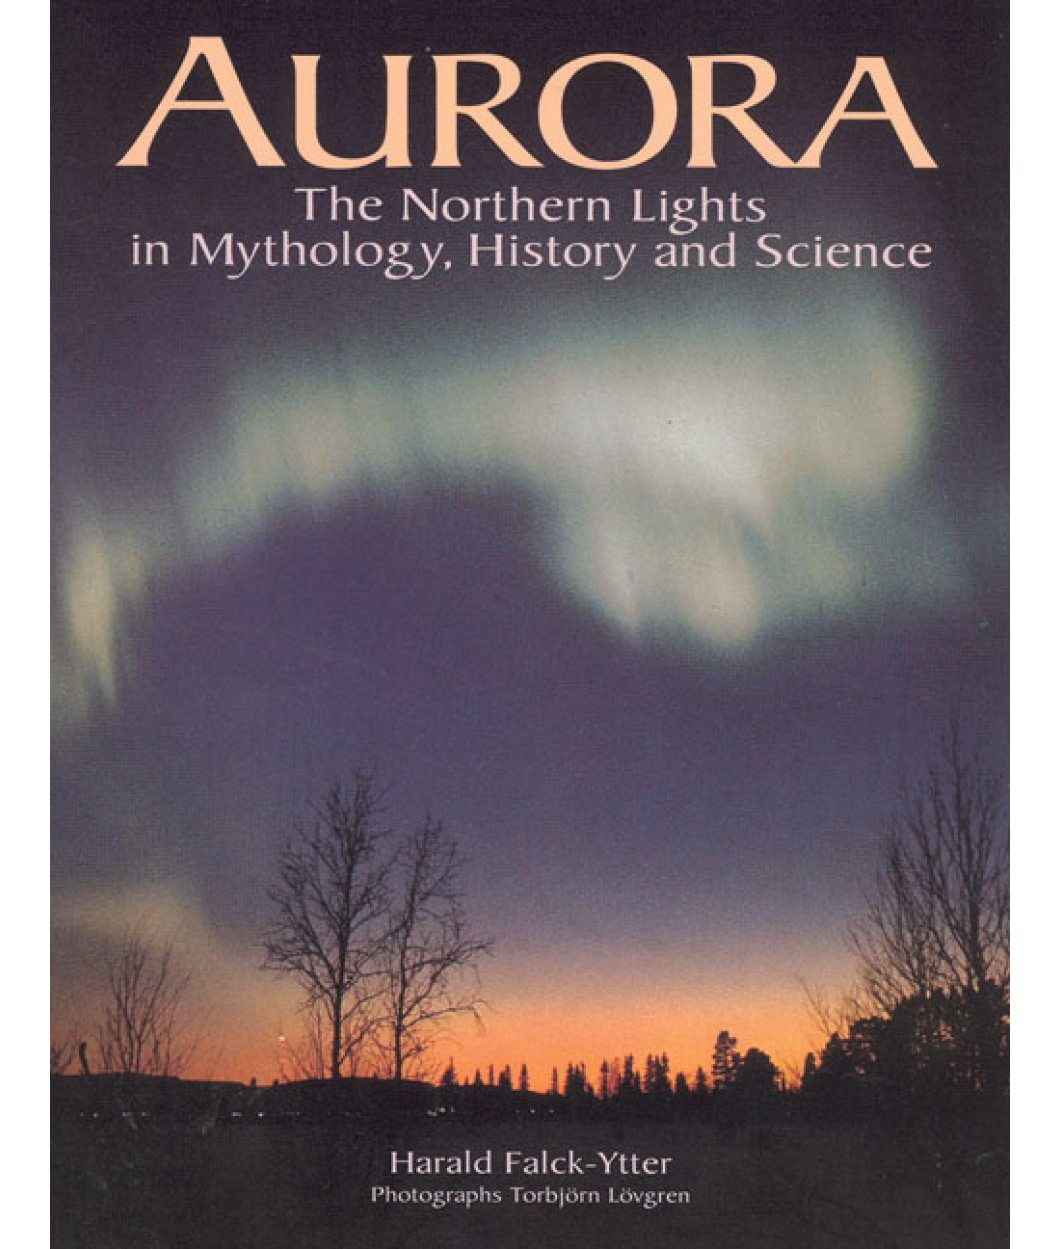 Aurora: The Northern Lights in Mythology, History & Science